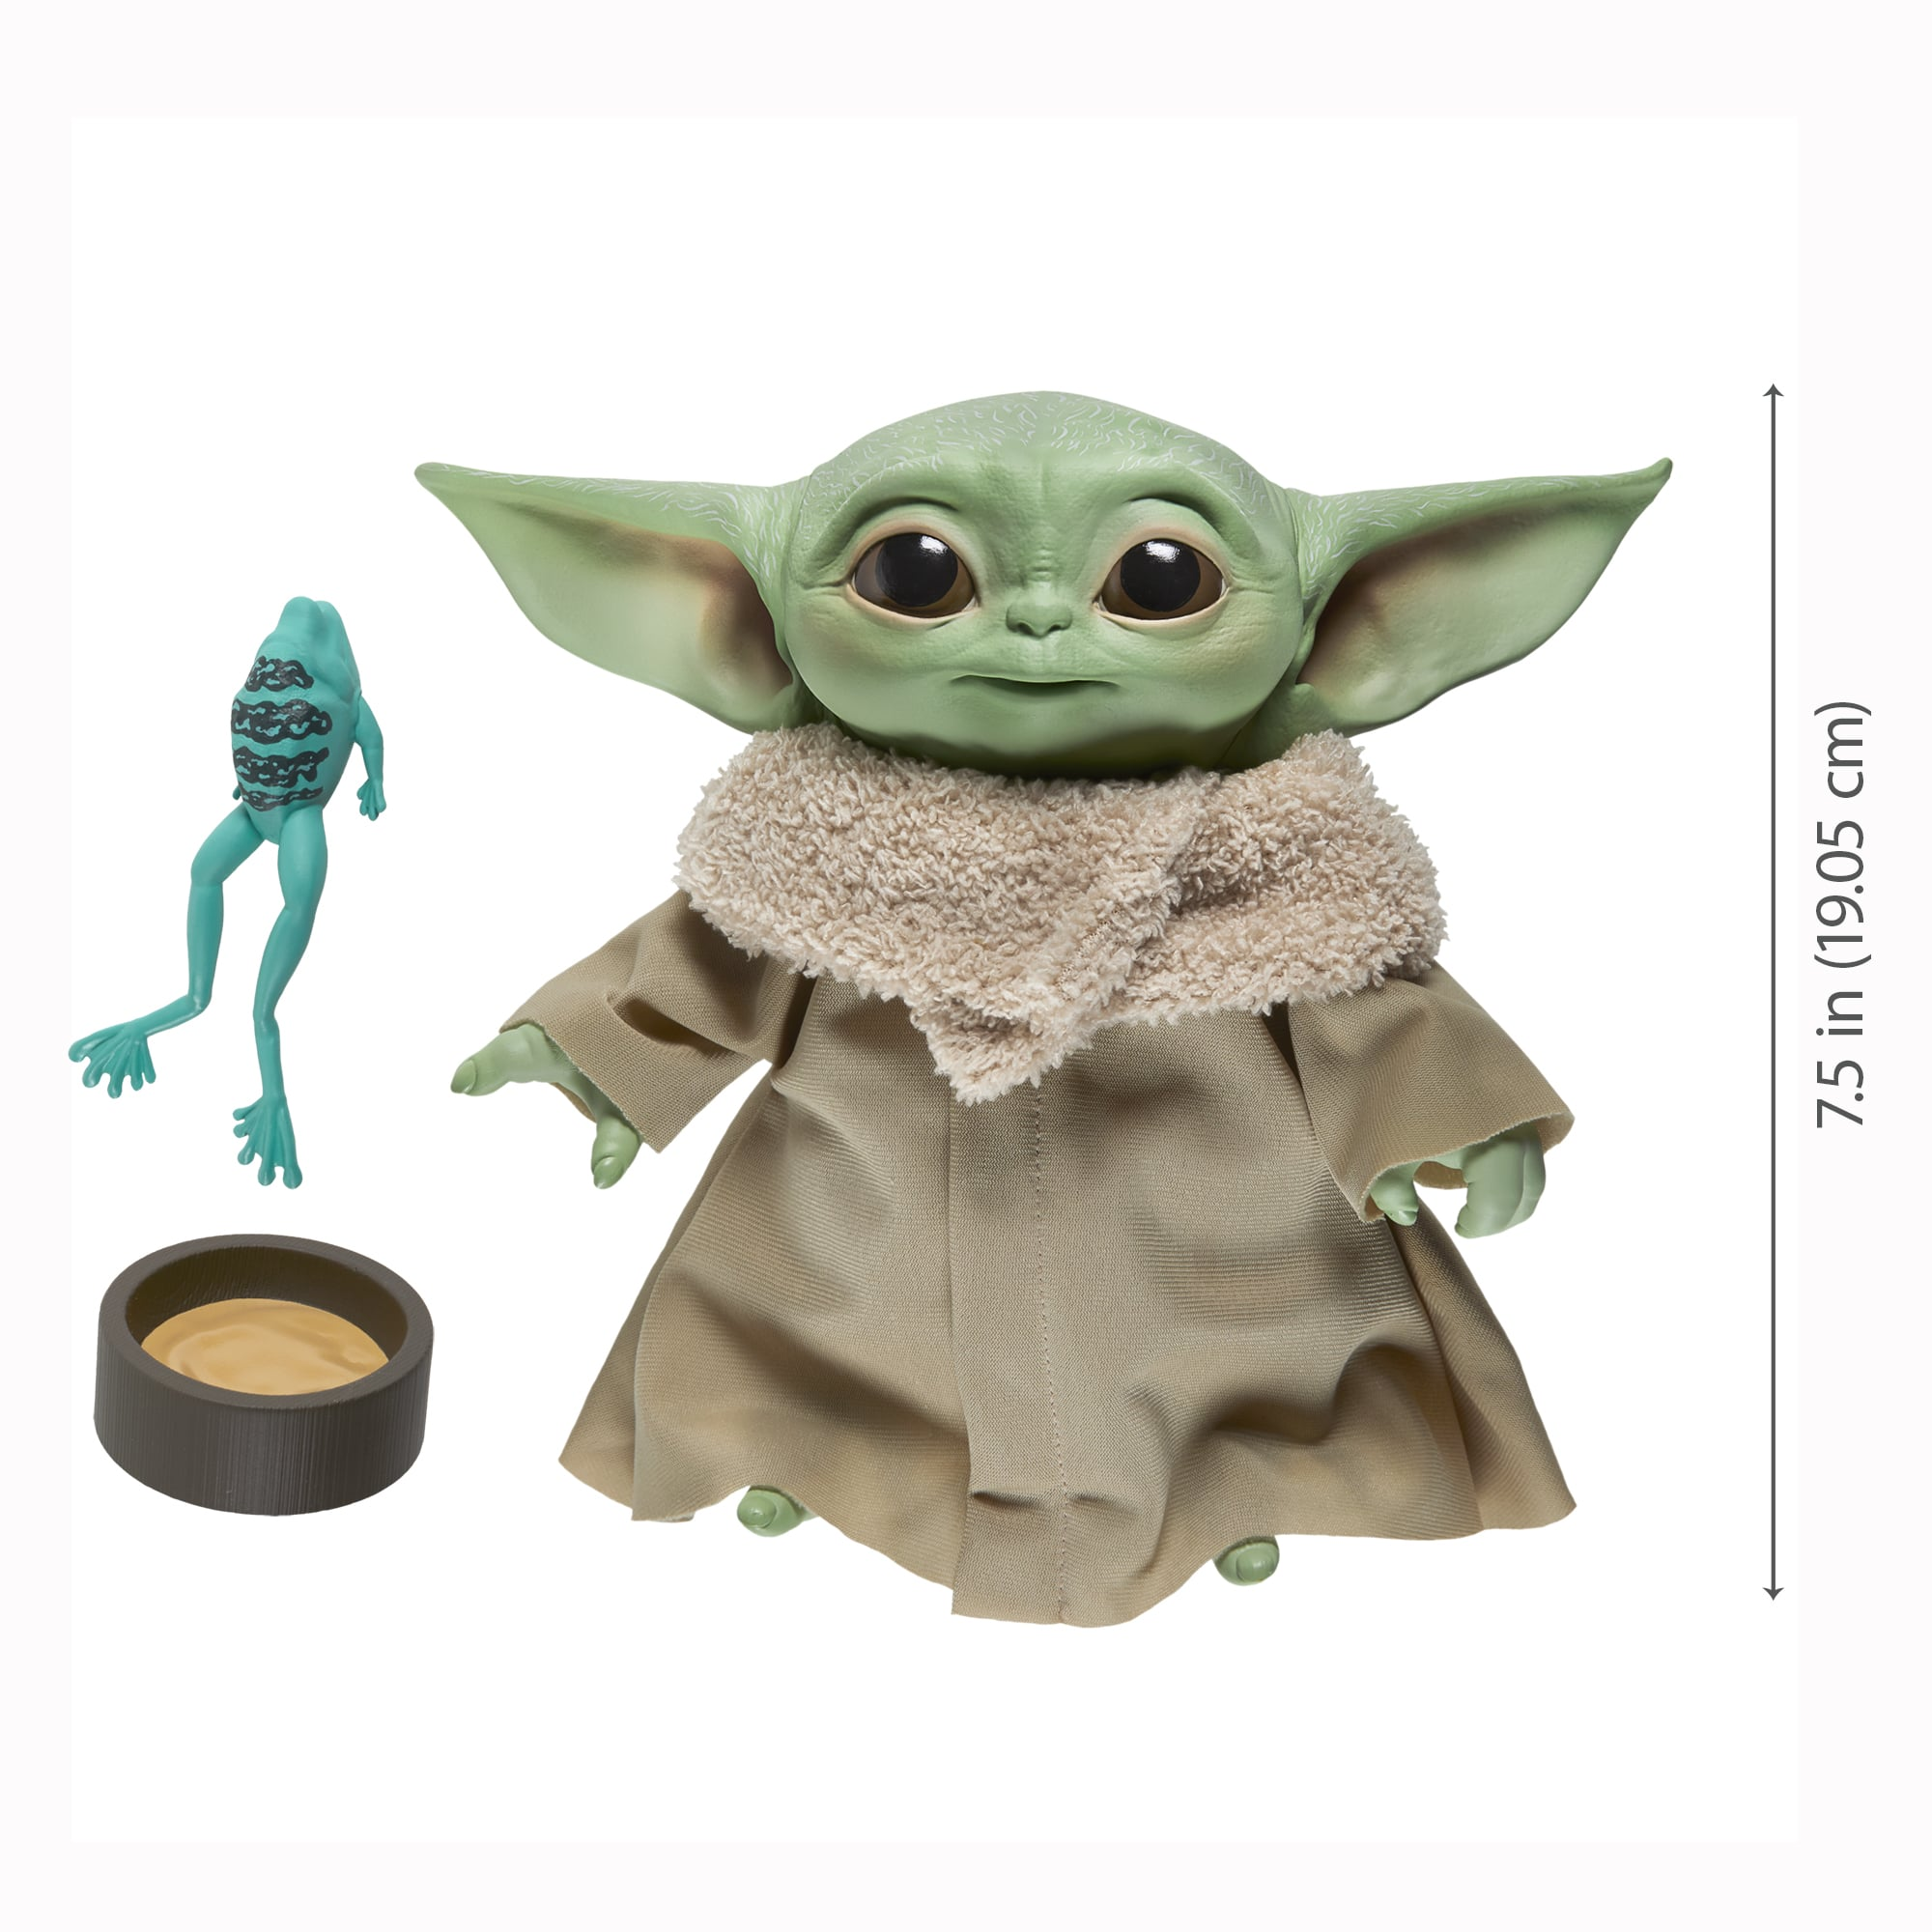 Hasbro's first Baby Yoda toys are here and they're freaking adorable 12